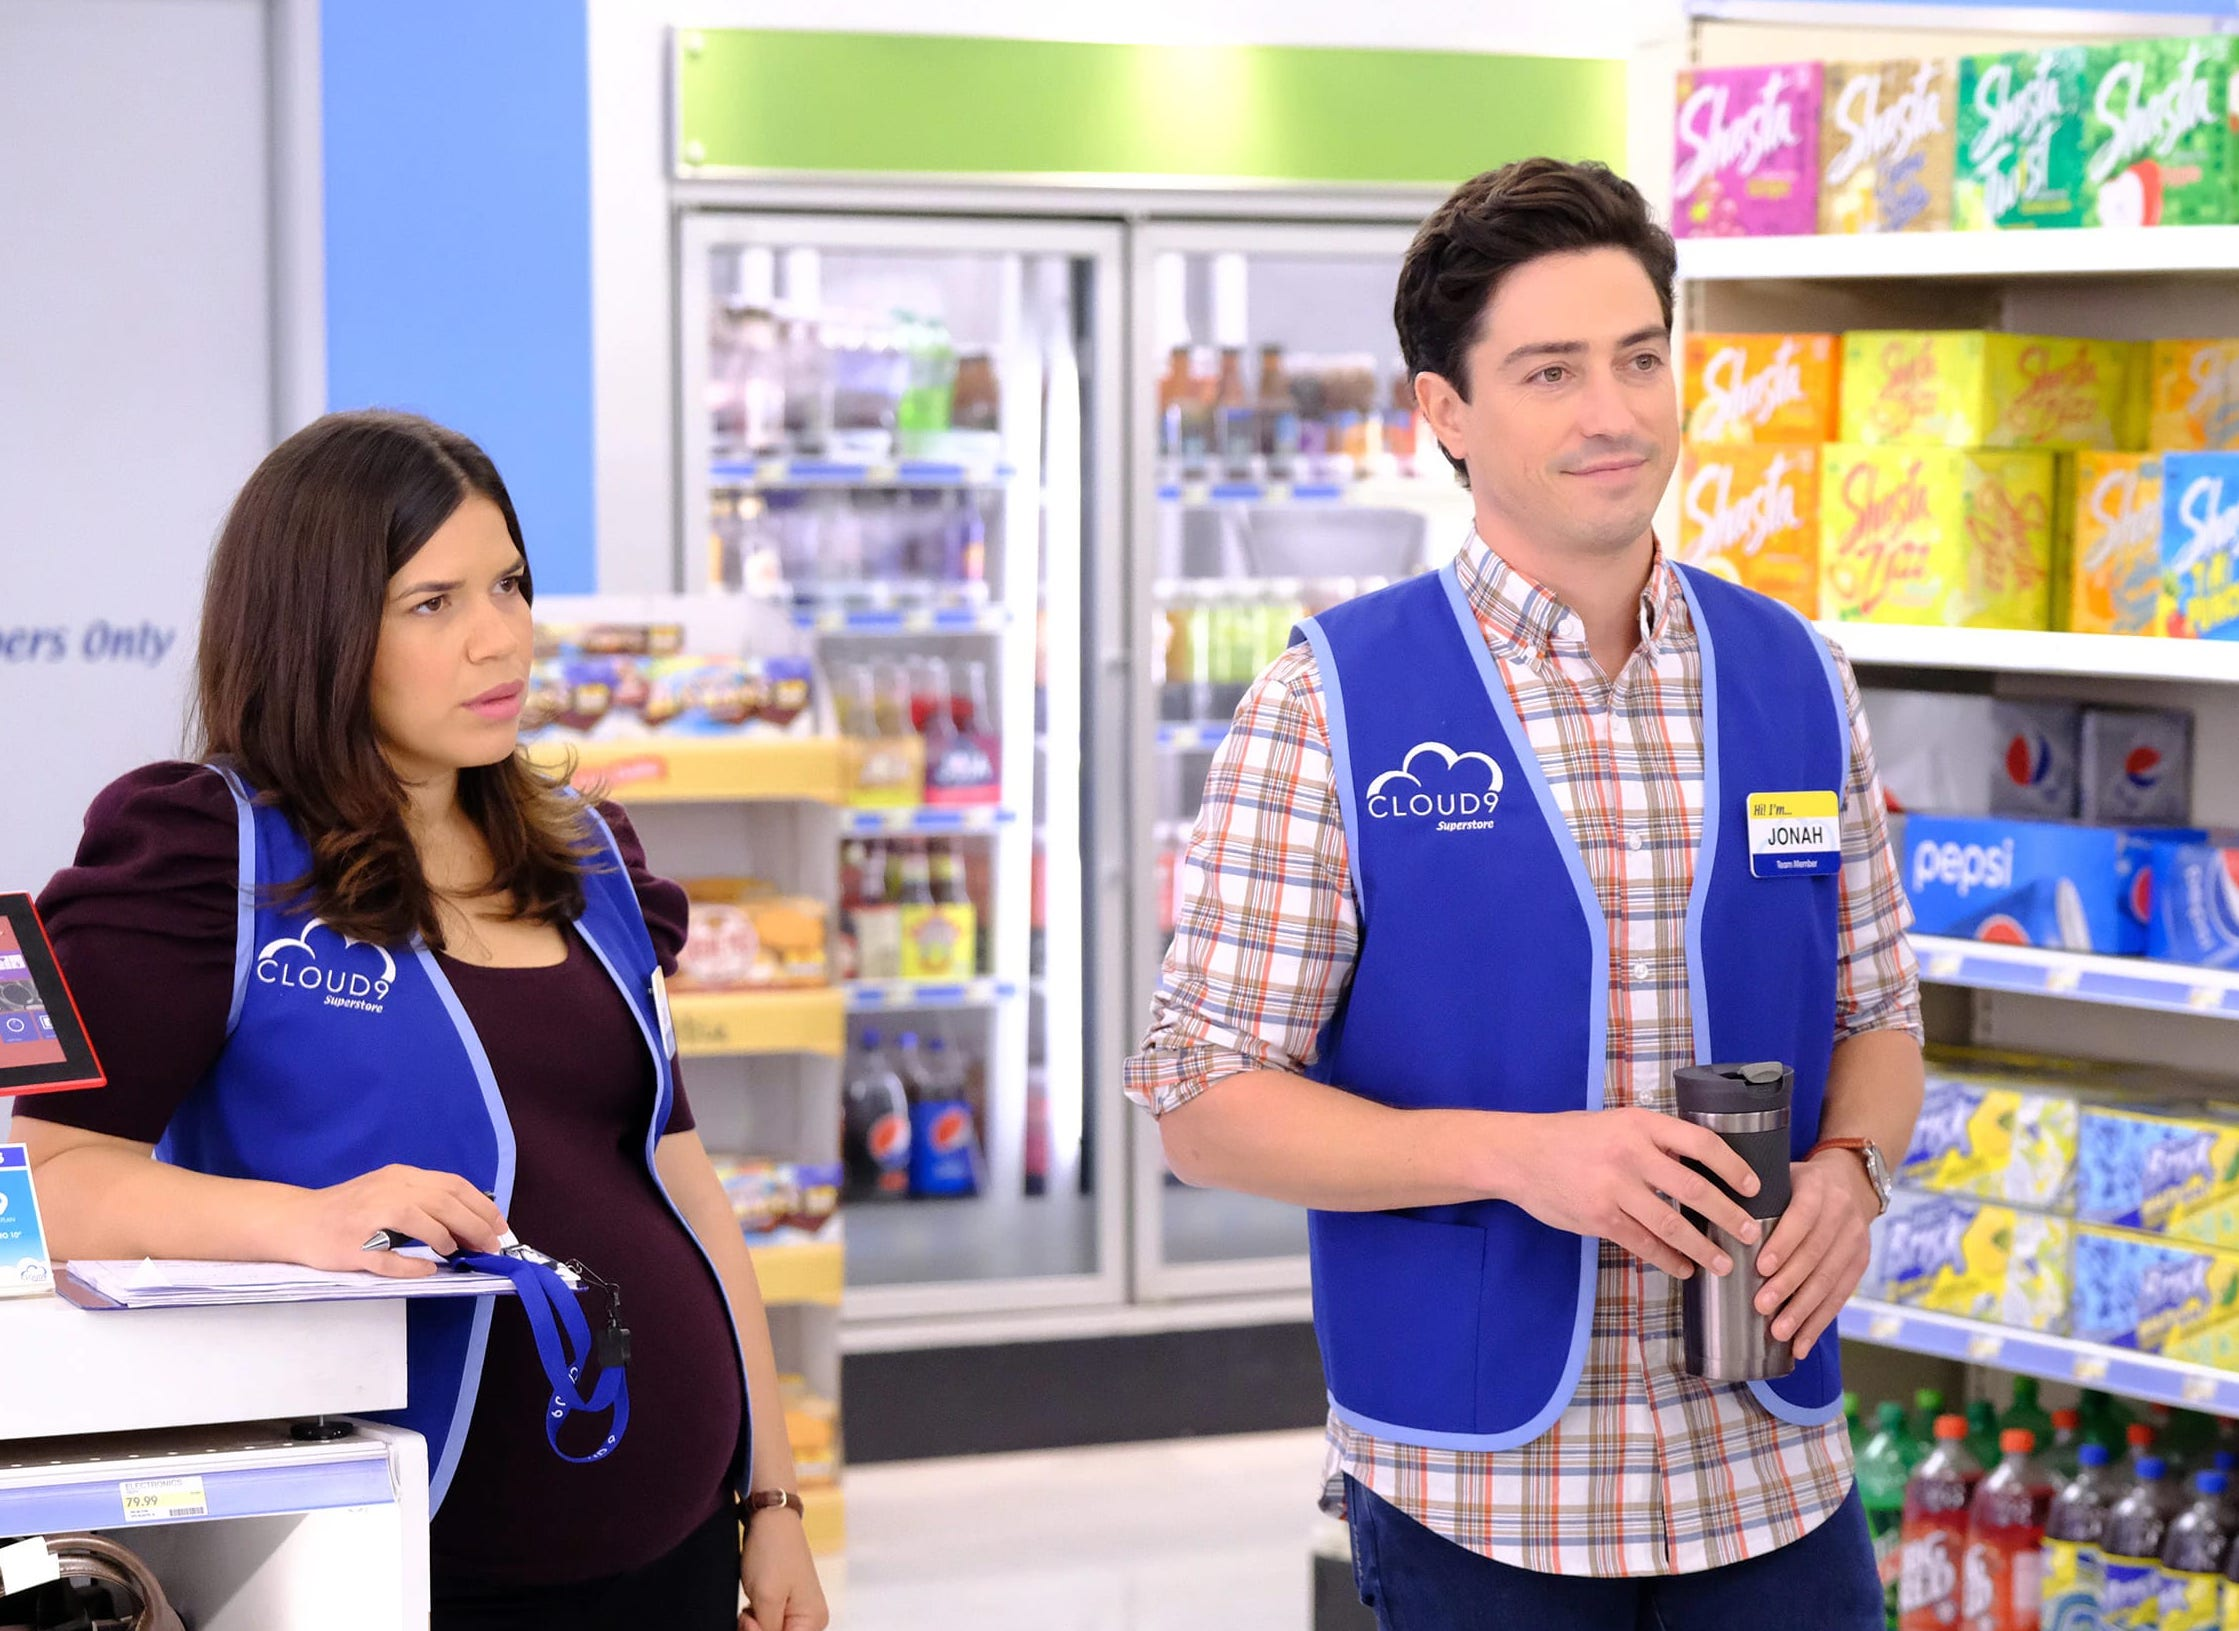 Superstore 401 - Amy and Jonah